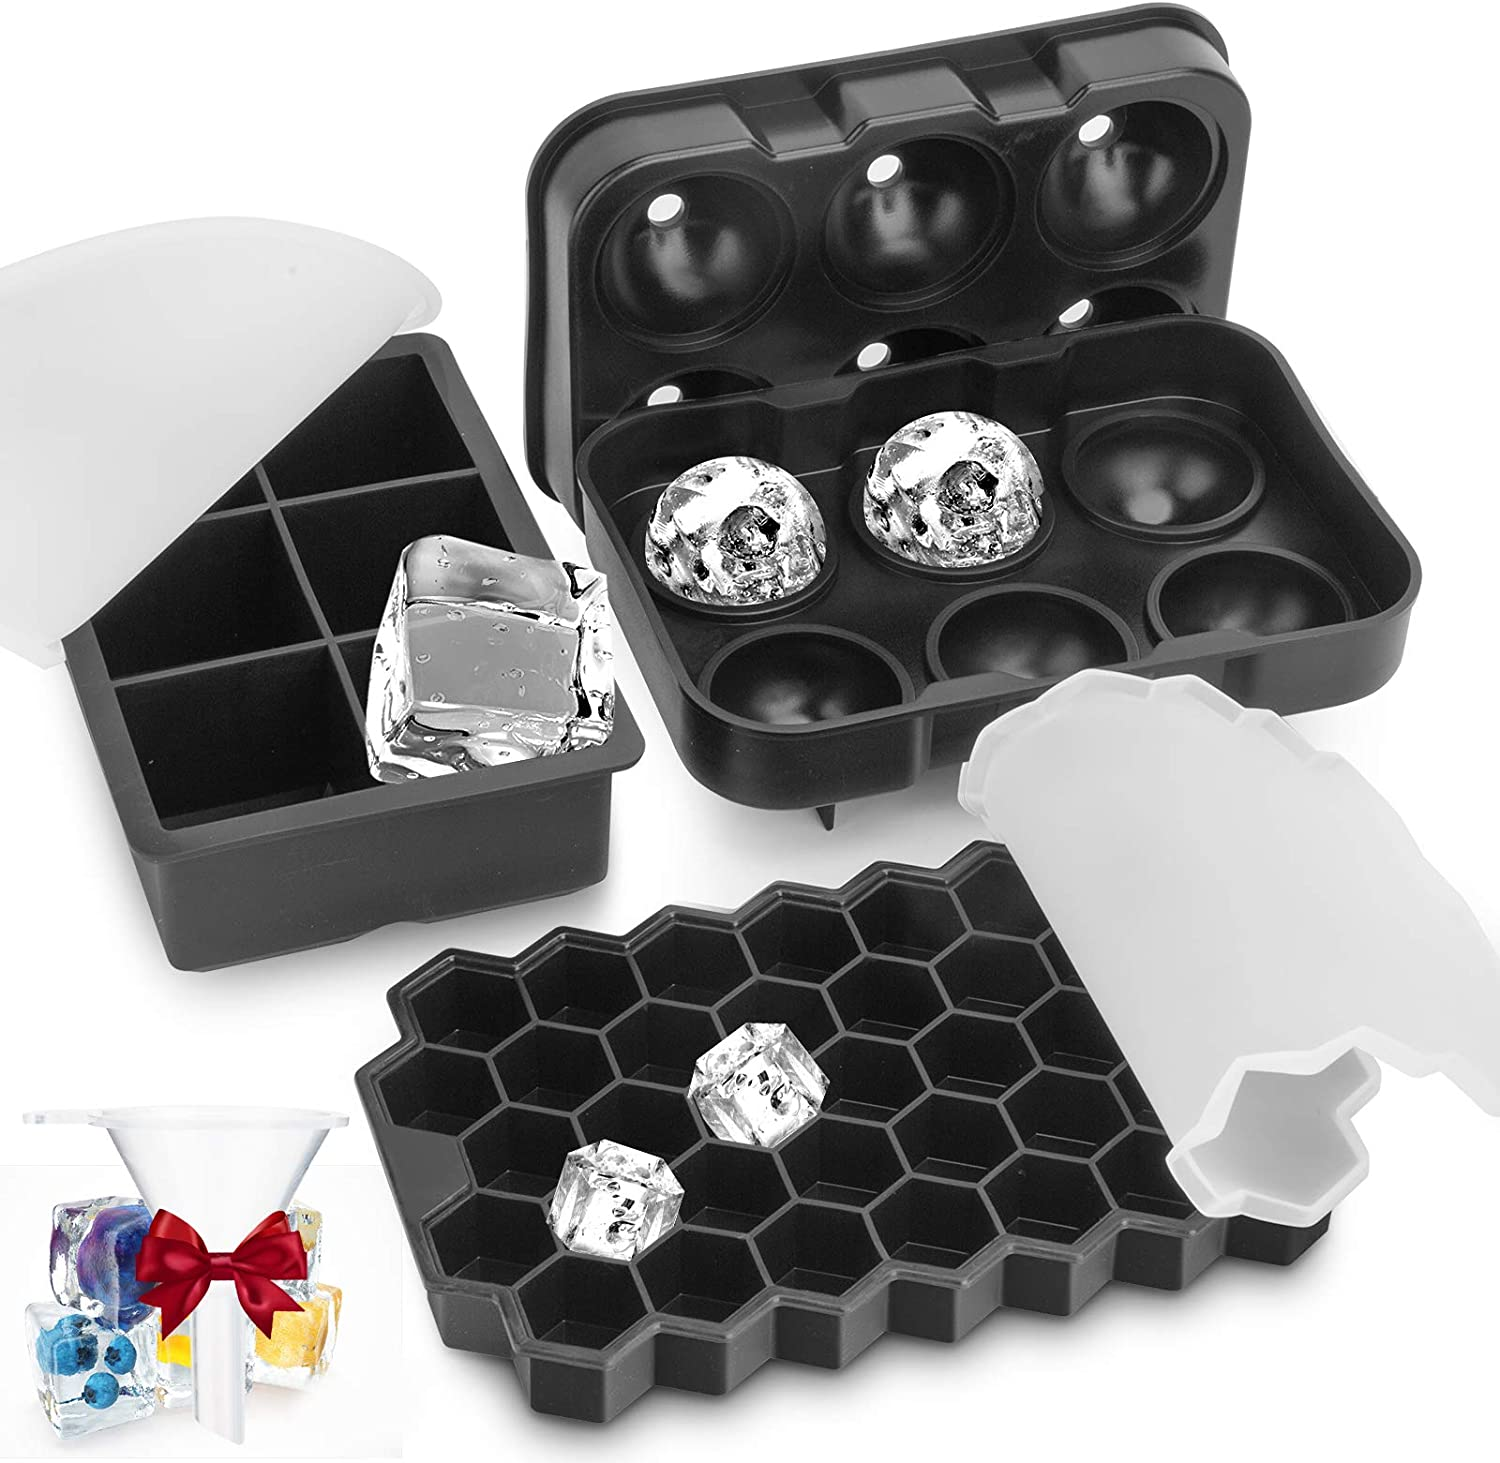 Ice Cube Tray, 3 Pack Food Grade Ice Cube Molds for Cocktail Whiskey, BPA-Free Silicone Ice Trays with Lids